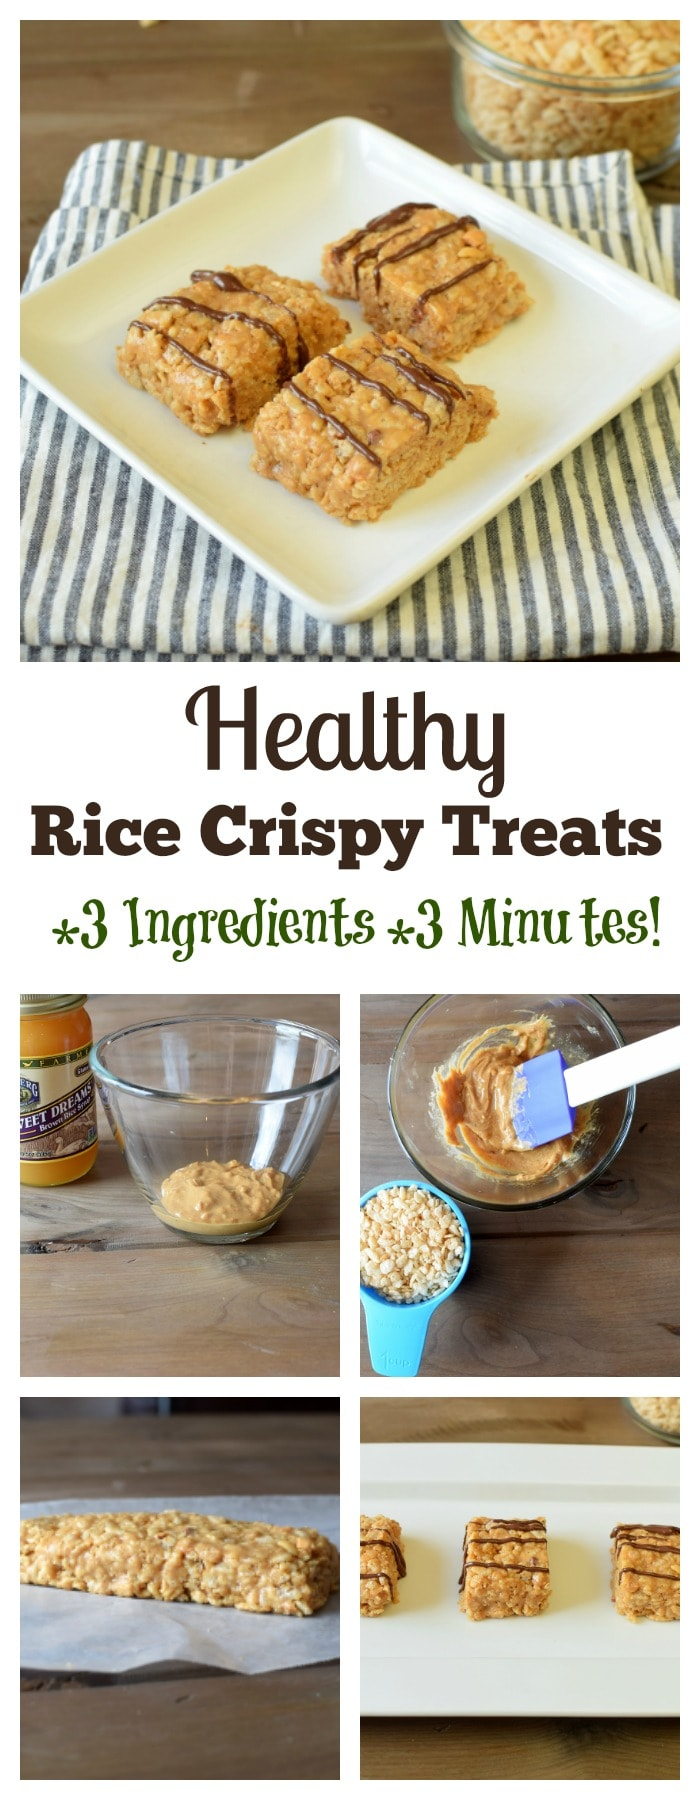 healthy rice crispy treats recipe